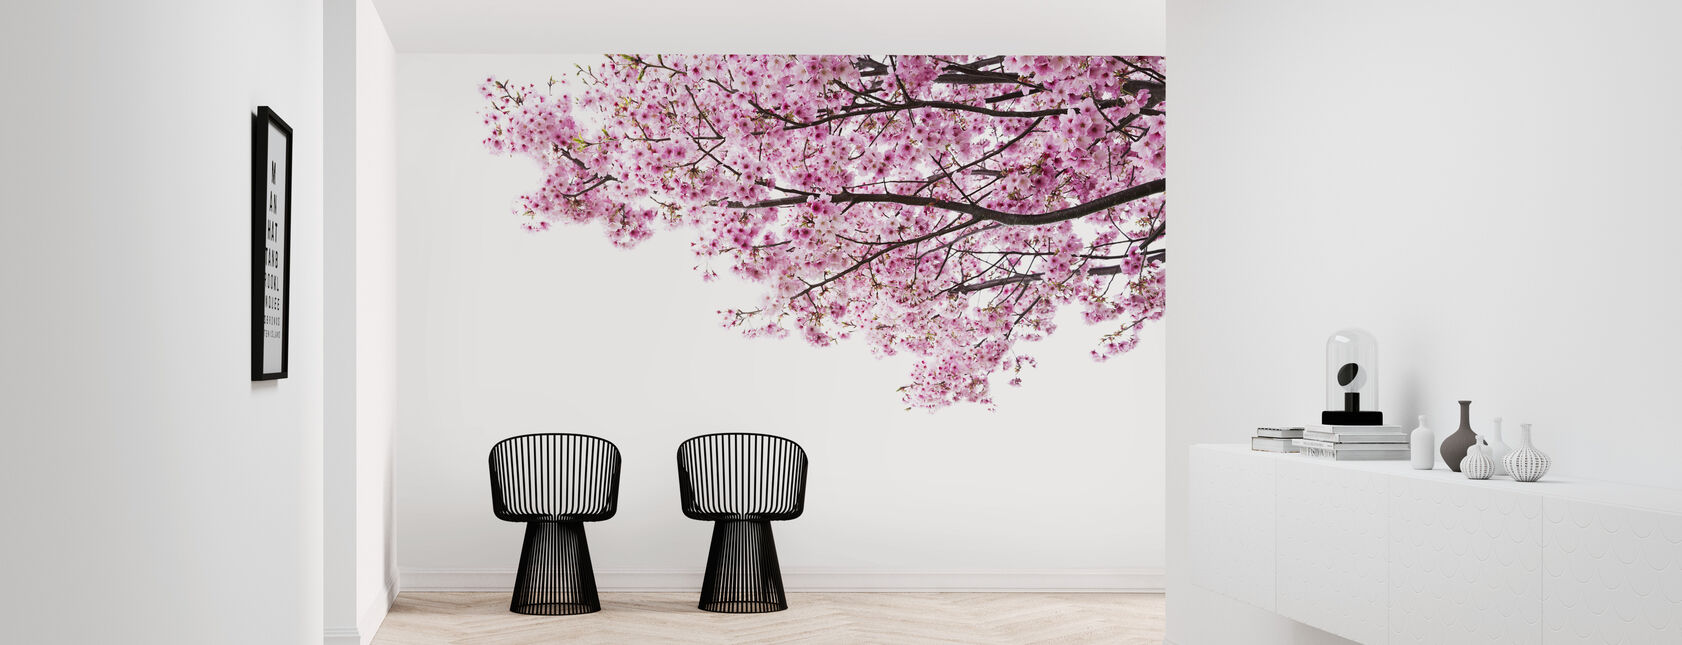 Pink Cherry Blossoms - Wallpaper - Hallway